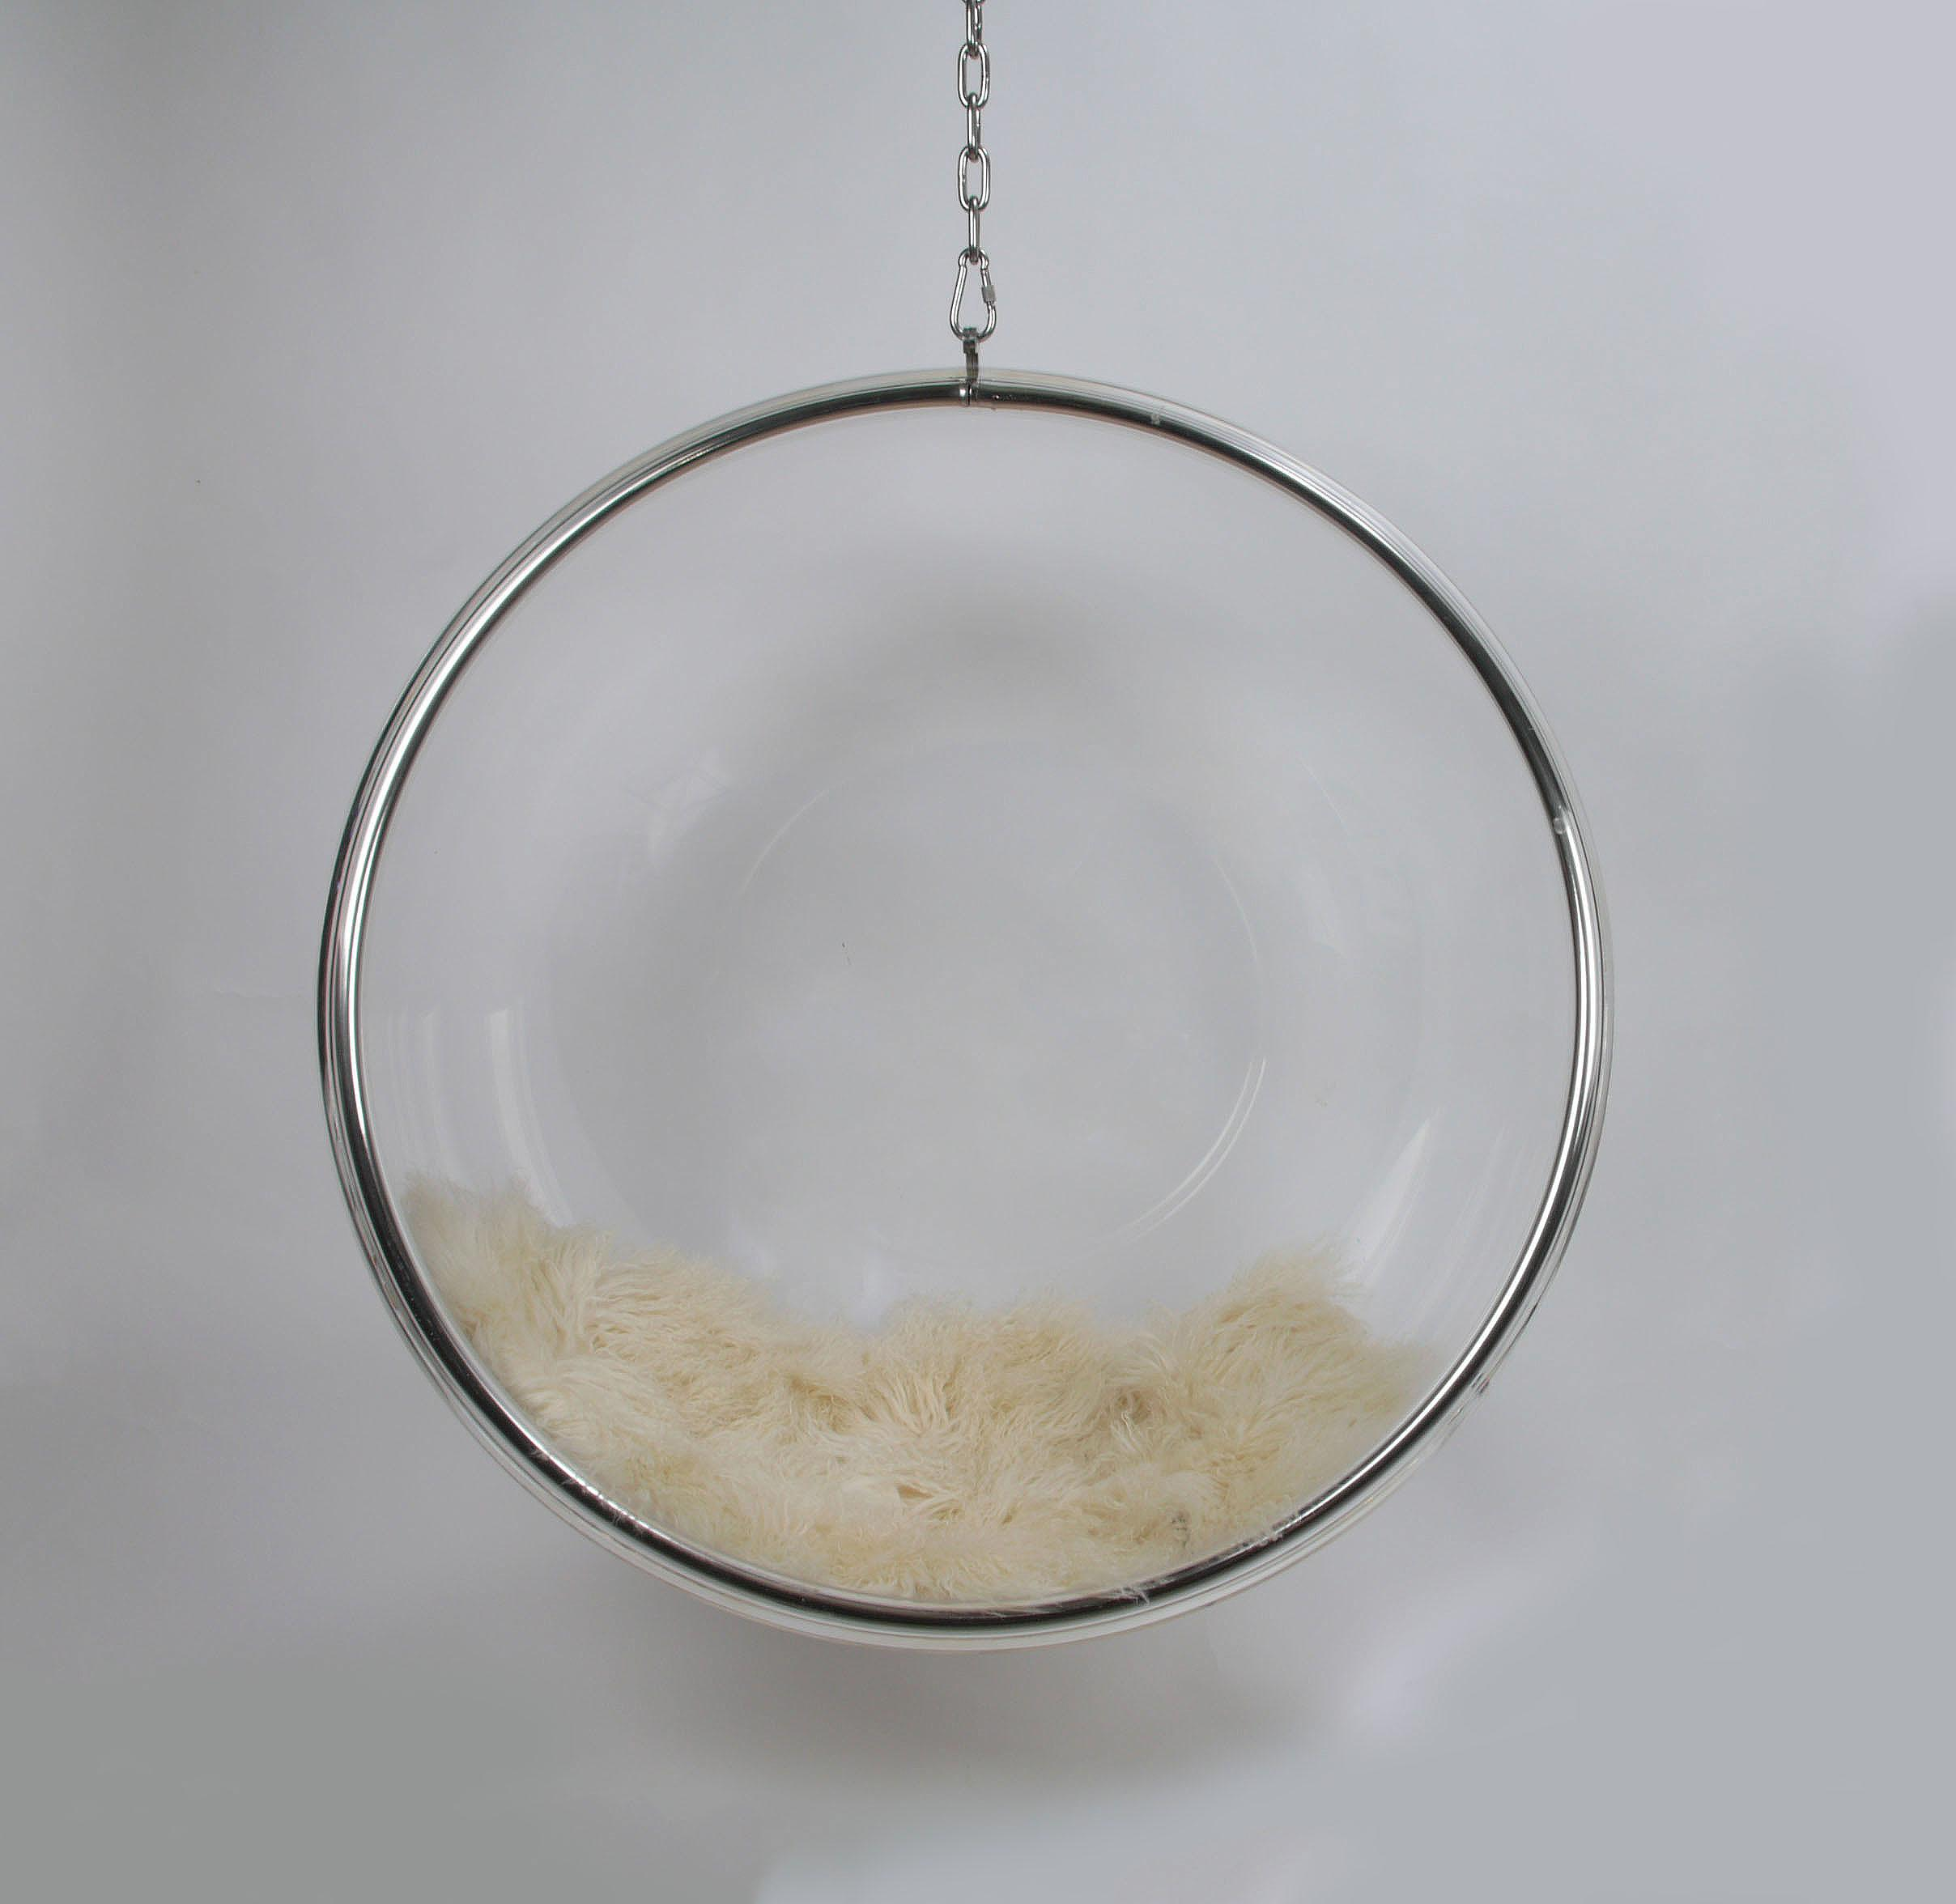 eero aarnio by adelta hanging lucite bubble chair image 2 of 7